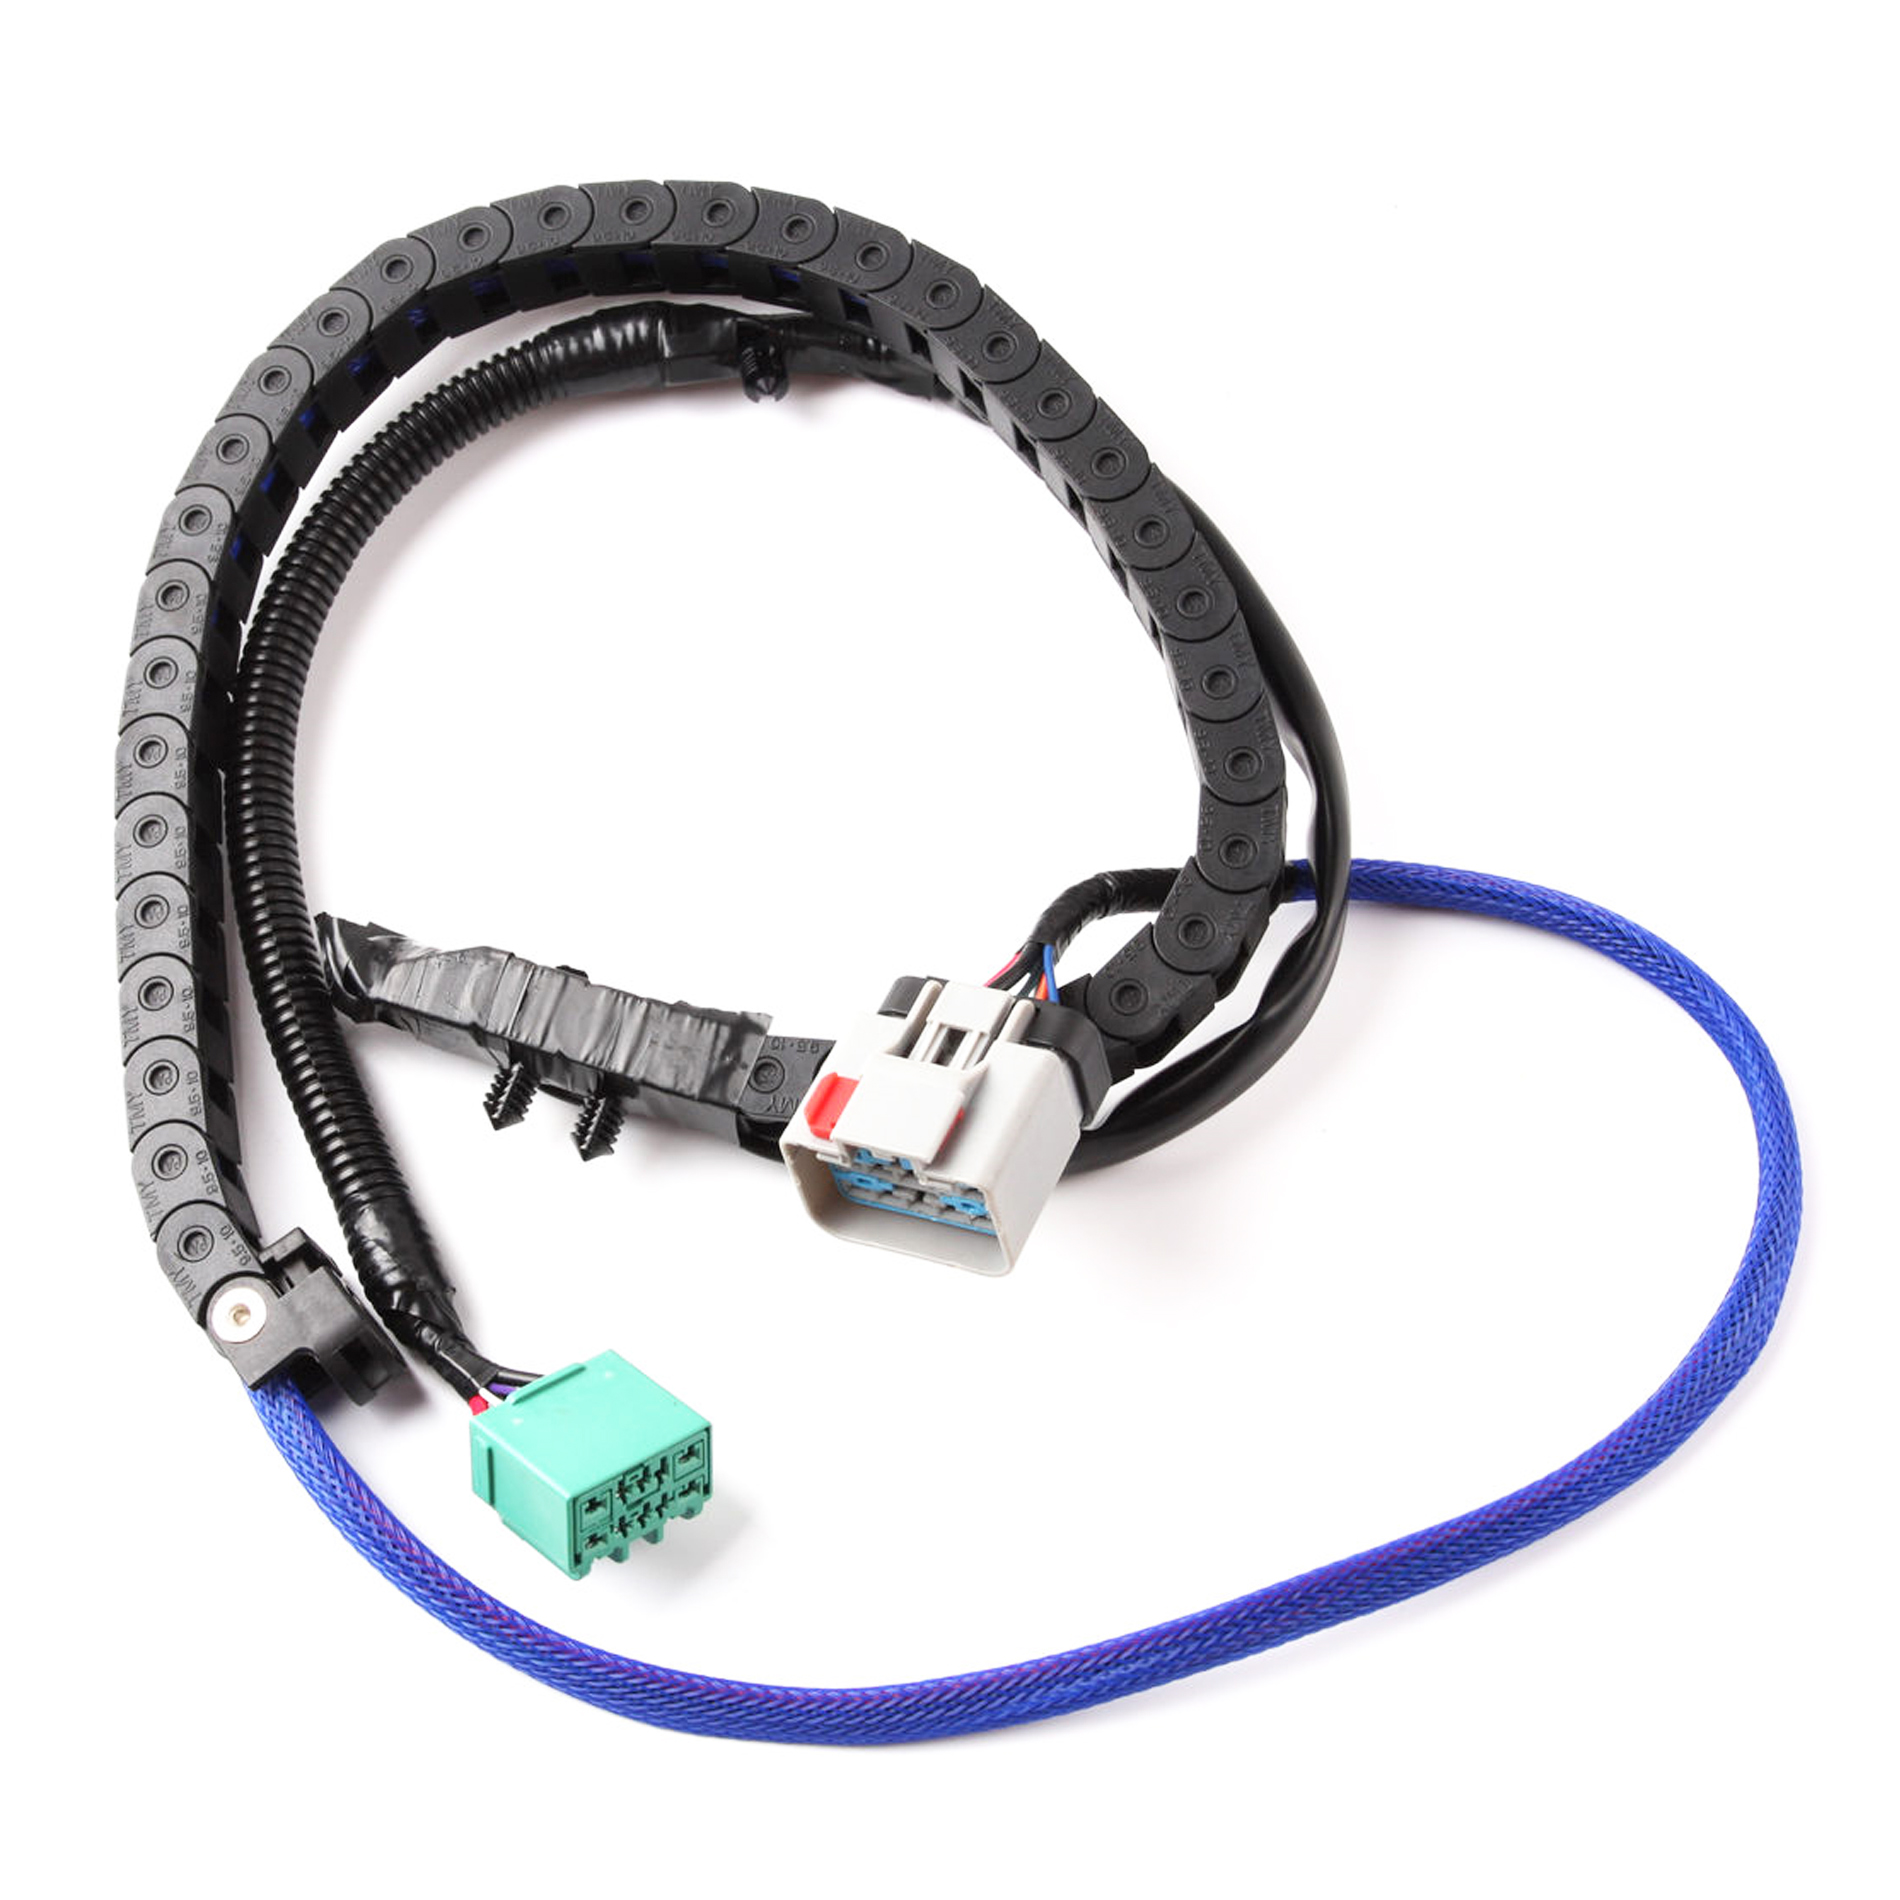 2008 Dodge Grand Caravan Sliding Door Wiring Harness from i5.walmartimages.com